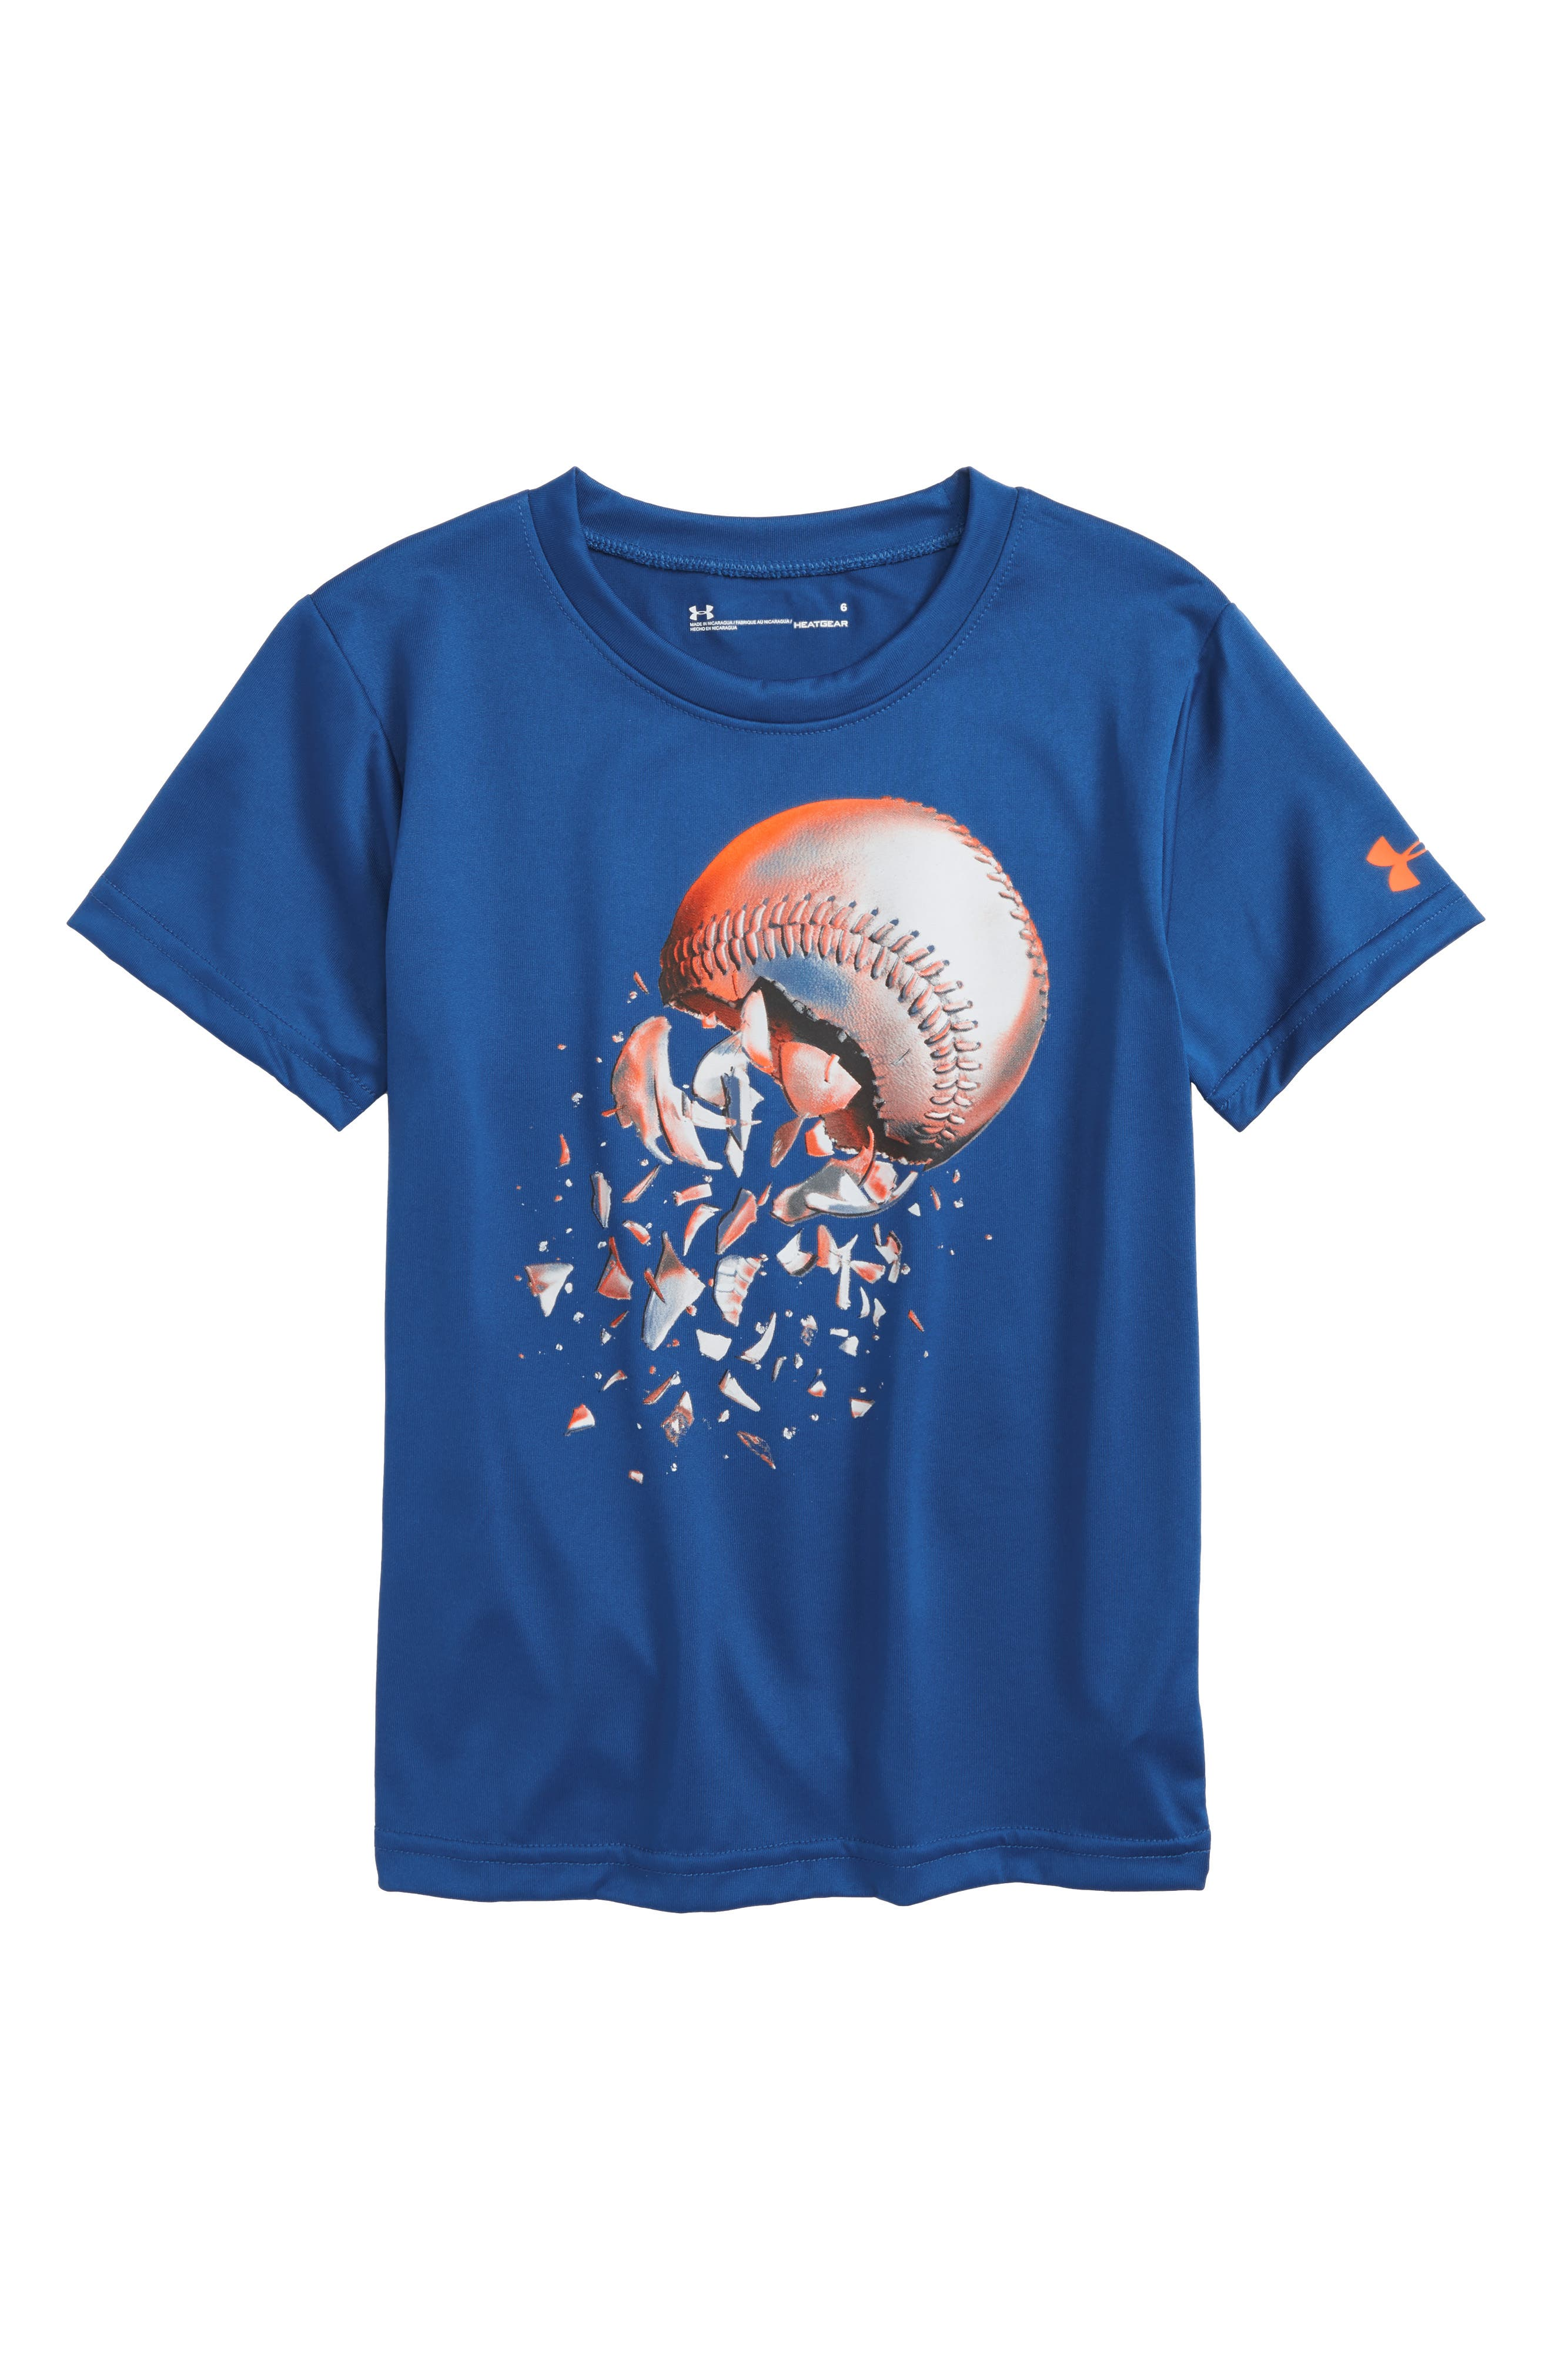 Under Armour Baseball Explosion HeatGear® T-Shirt (Toddler Boys & Little Boys)